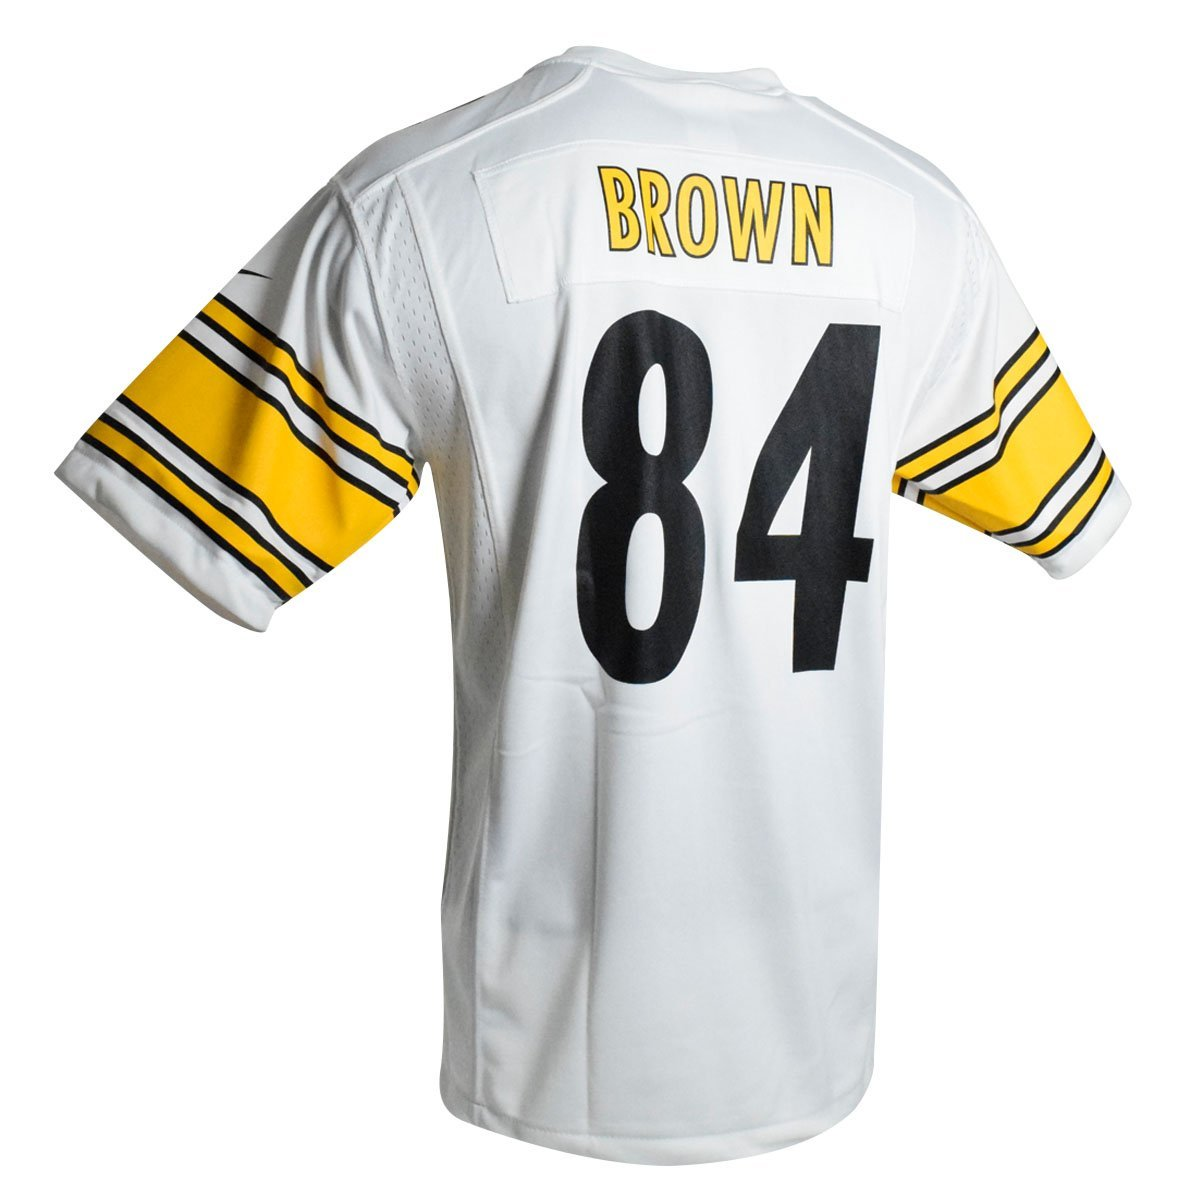 9c04dbb9203 Get Quotations · Pittsburgh Steelers Antonio Brown #84 Youth NFL Game Jersey,  White